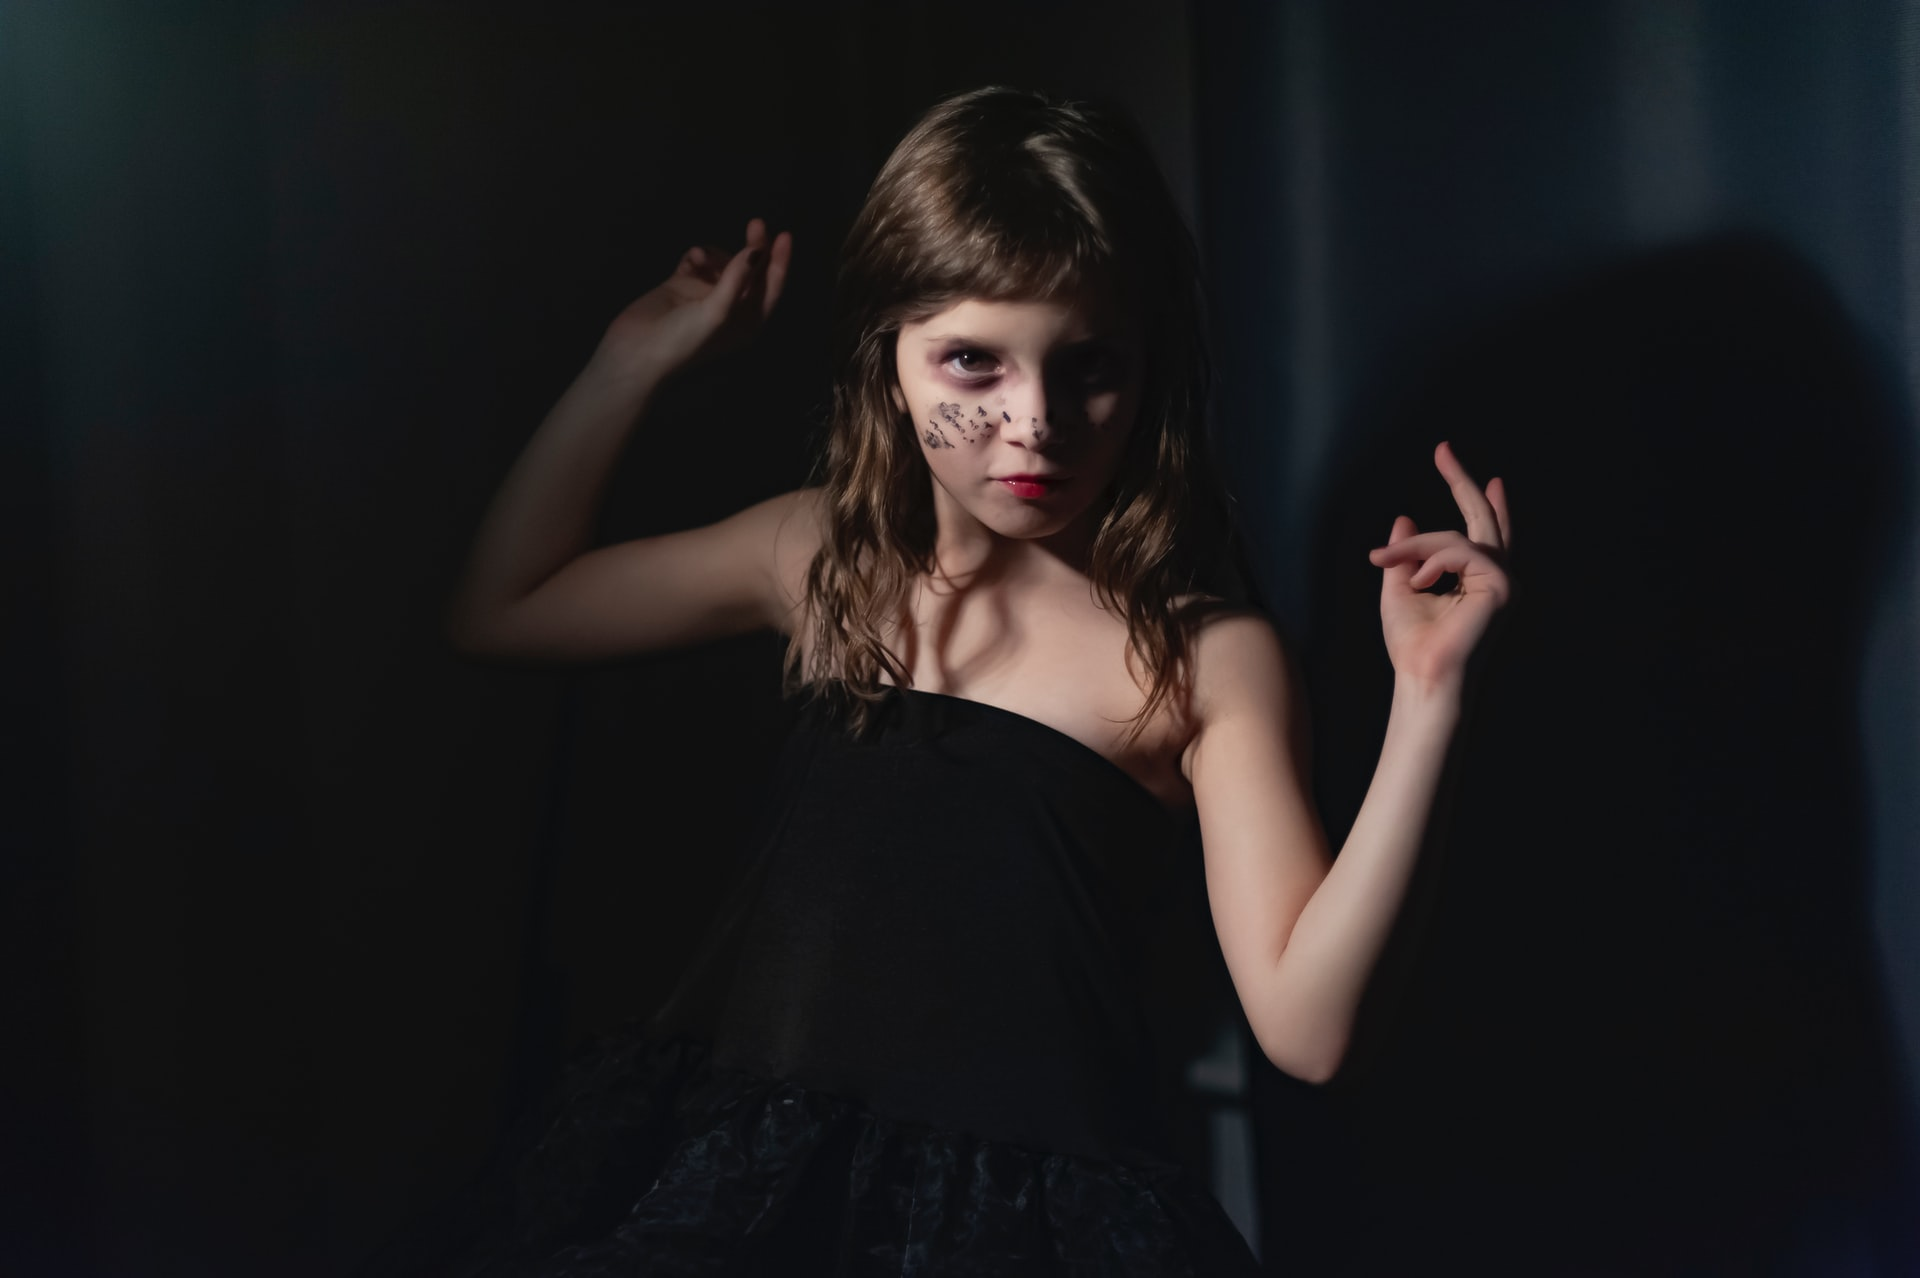 The best acting training. Have your child learn The Marks Method - Image 1